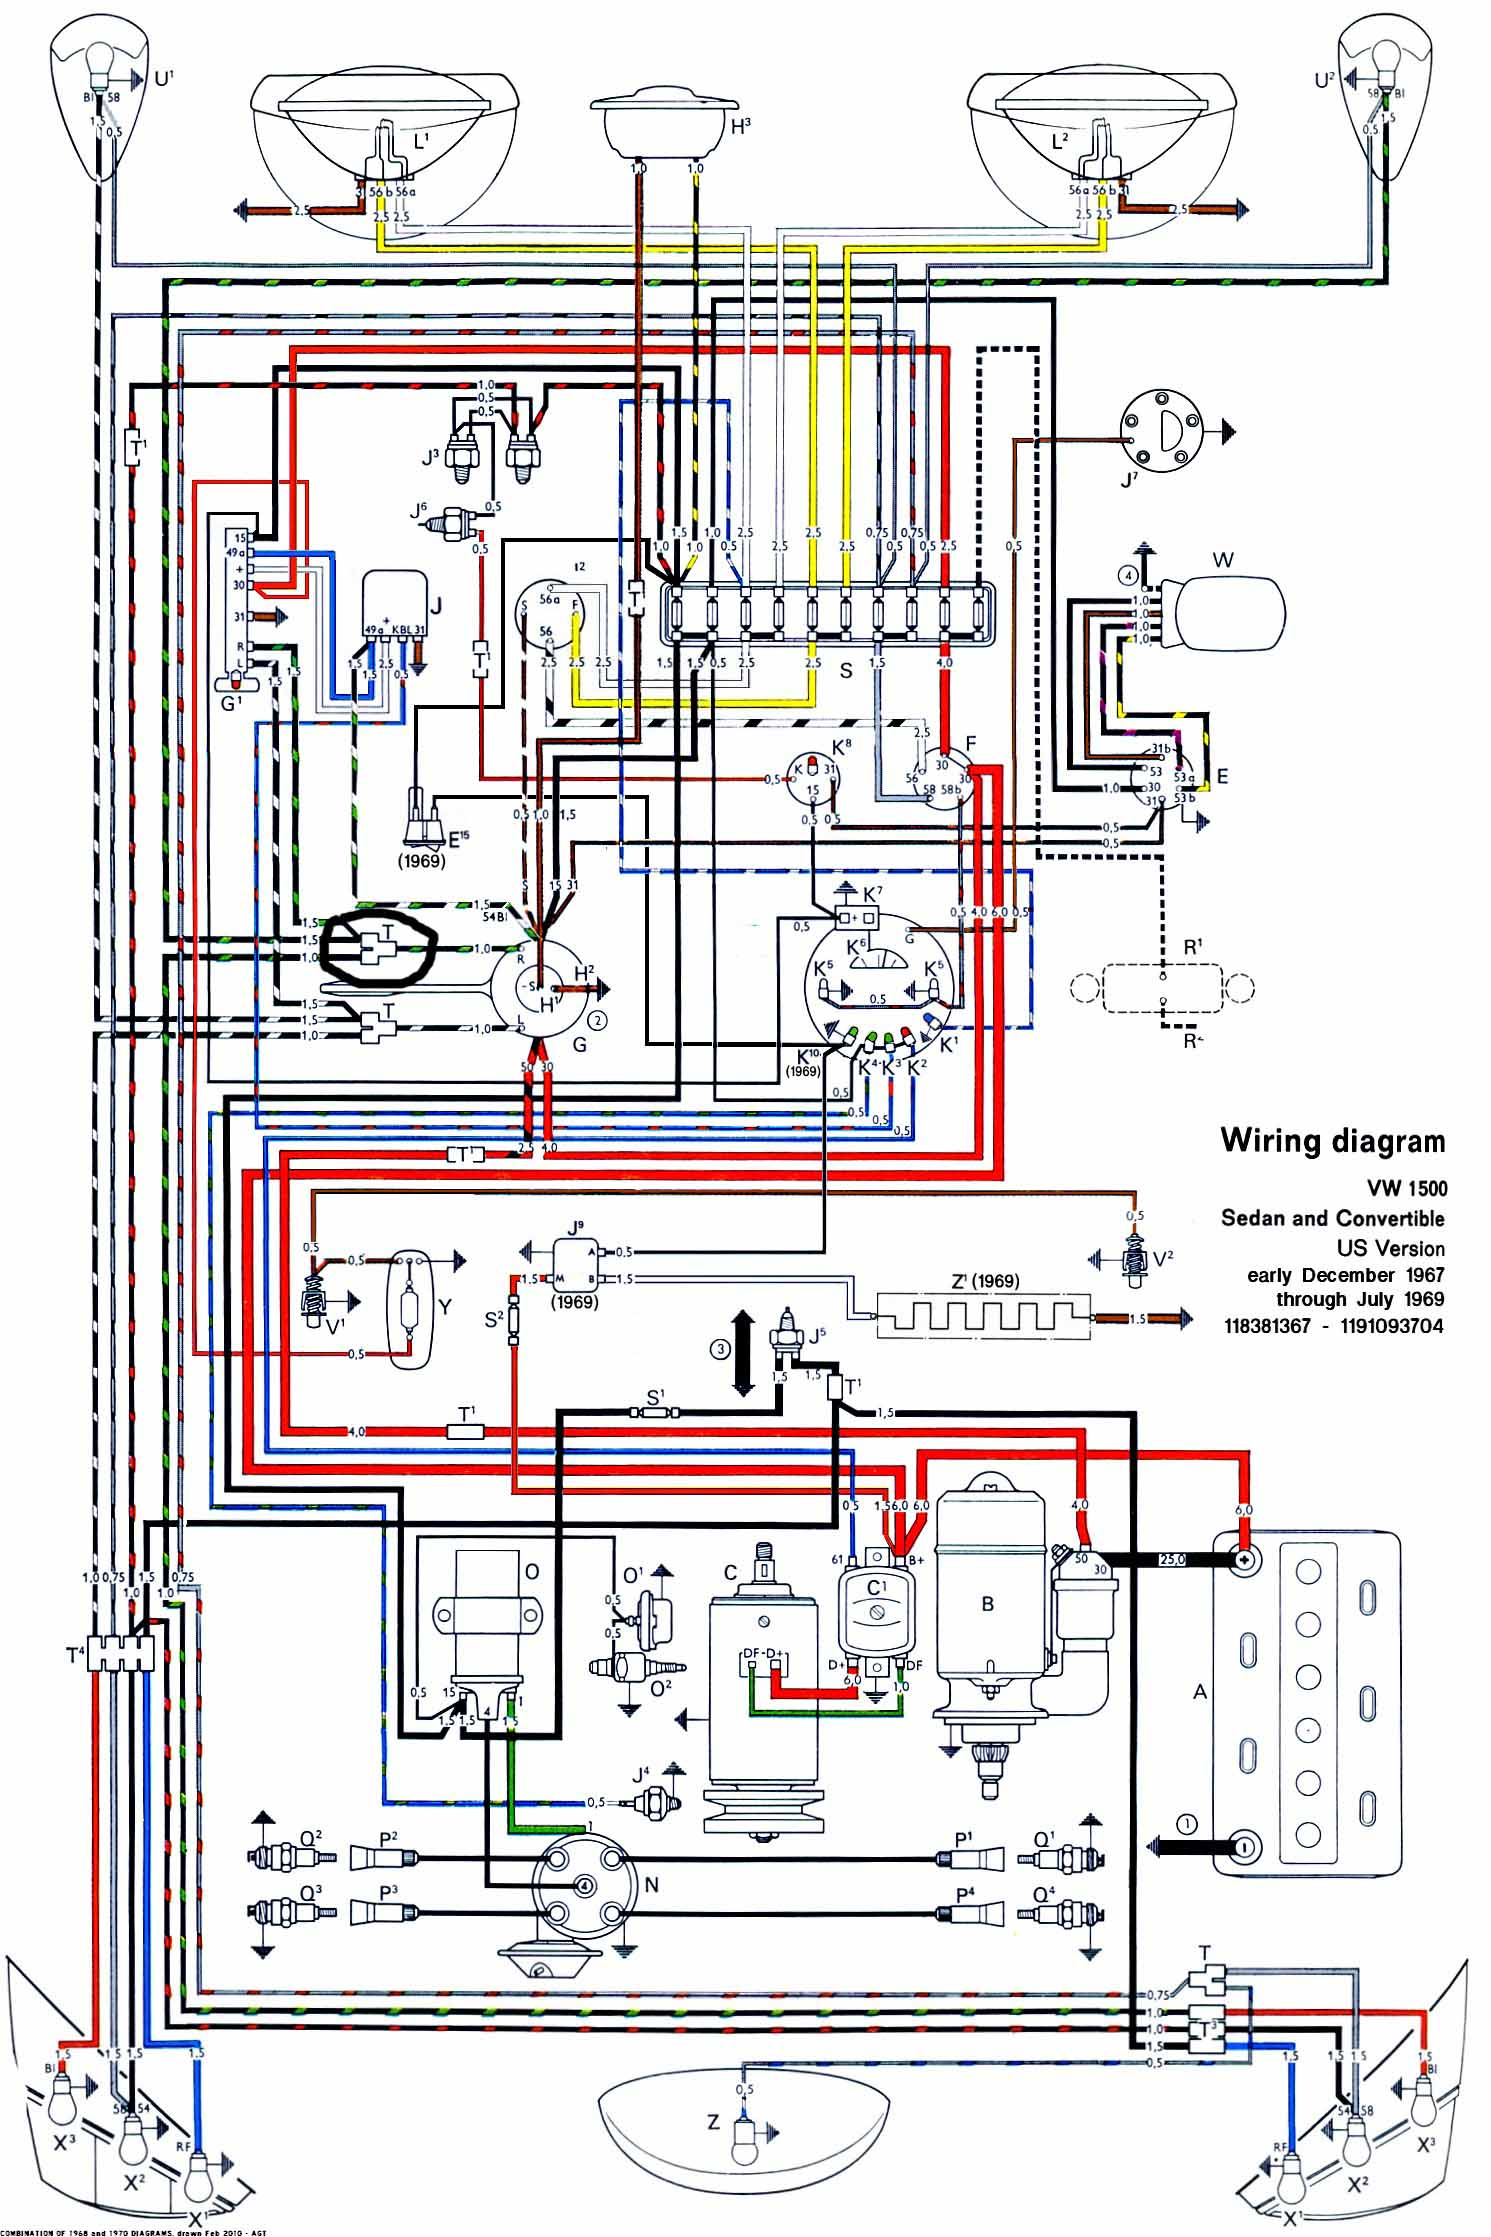 caravan electric hook up wiring diagram thesamba.com :: beetle - late model/super - 1968-up - view topic - passenger side blinker light ... #6